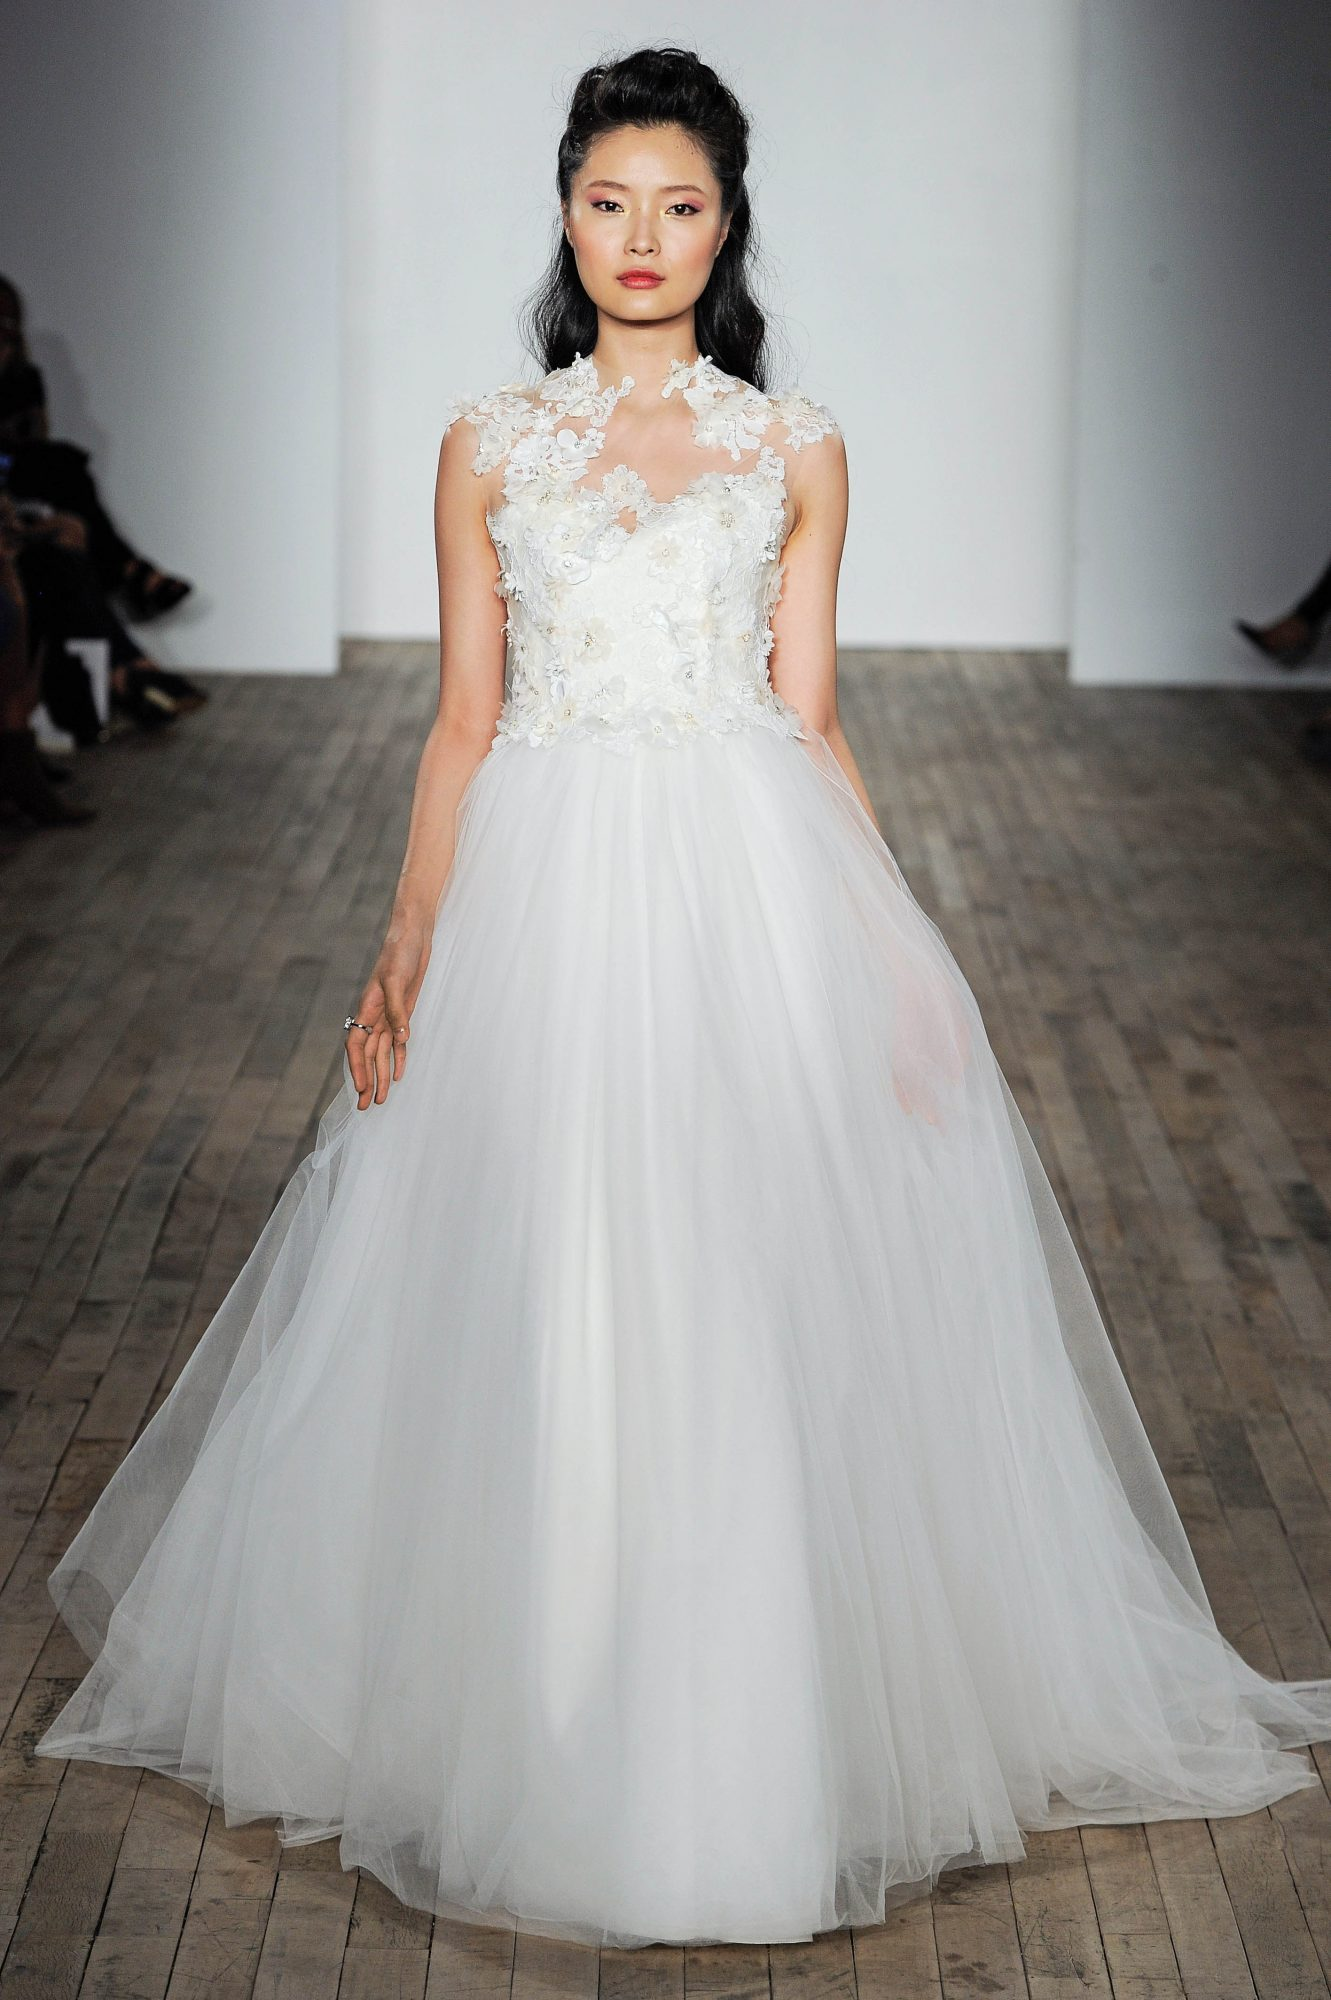 Allison Webb Floral Strap Wedding Dress Fall 2018